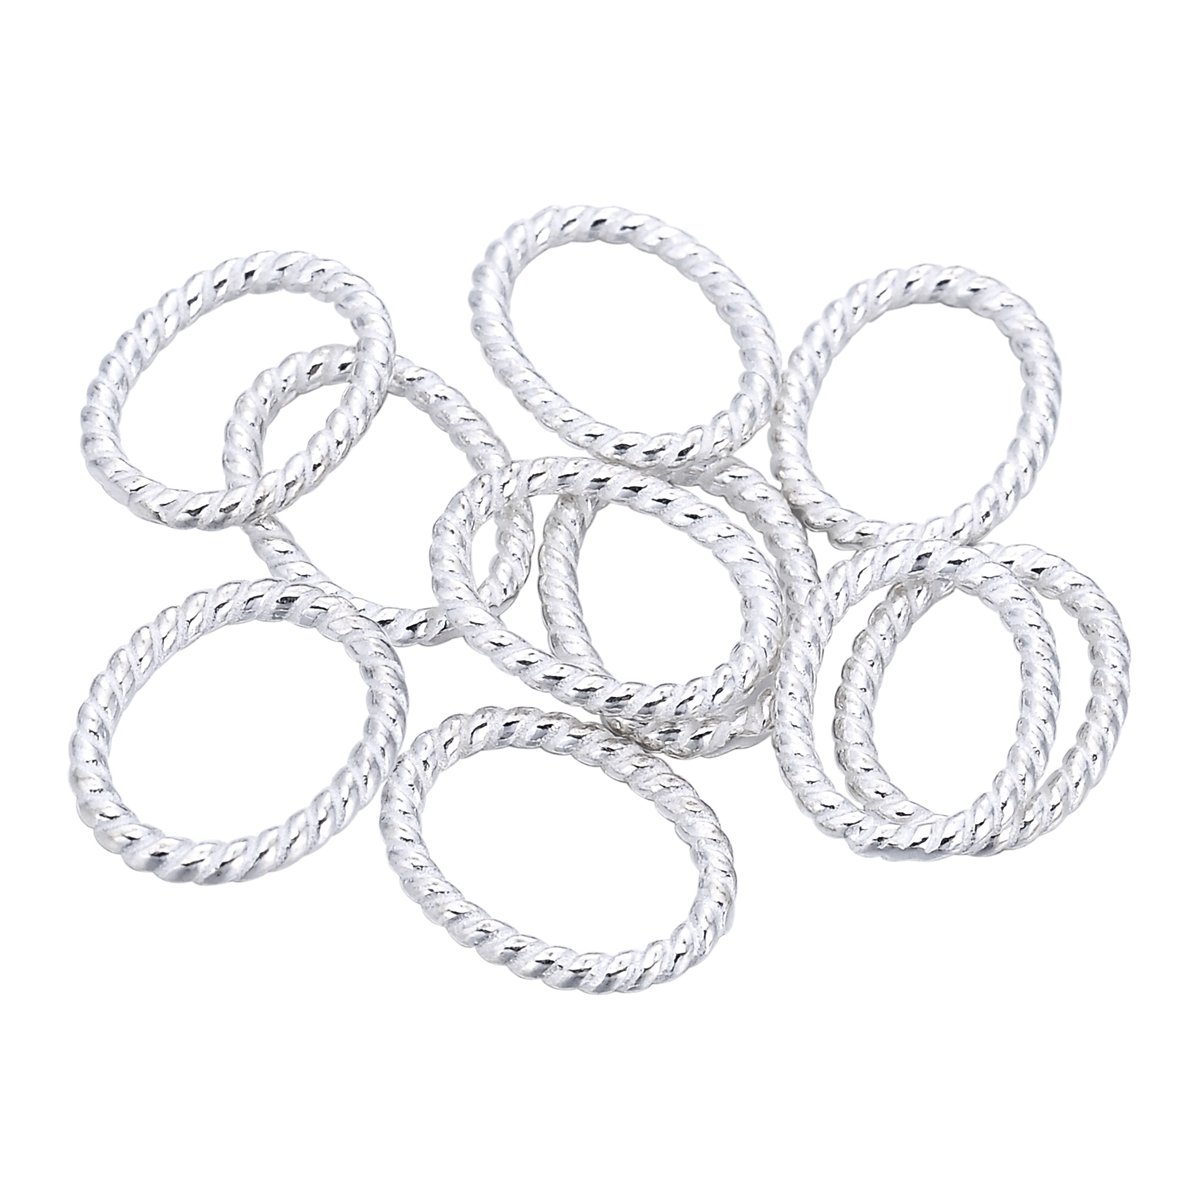 10PCS 925 Sterling Silver Round Twist Jump Ring Connector for Jewelry Making Findings 9mm ValyriaUK SGto-B285122